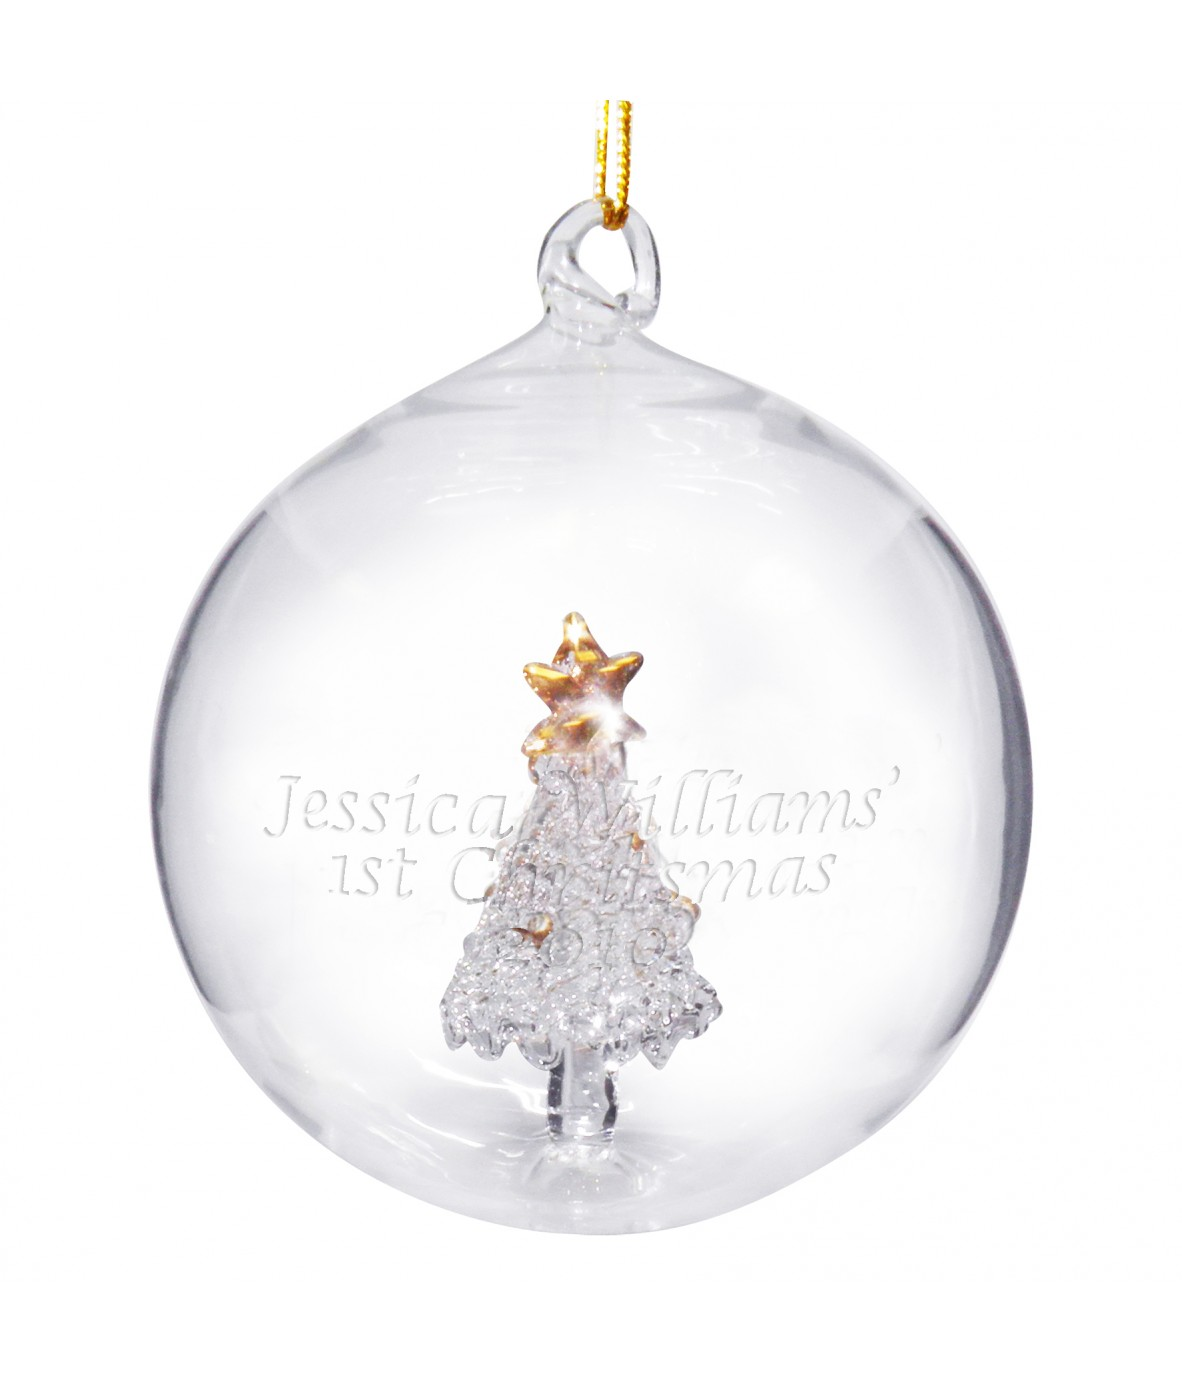 Personalised glass christmas tree decorations www for Personalised christmas decorations